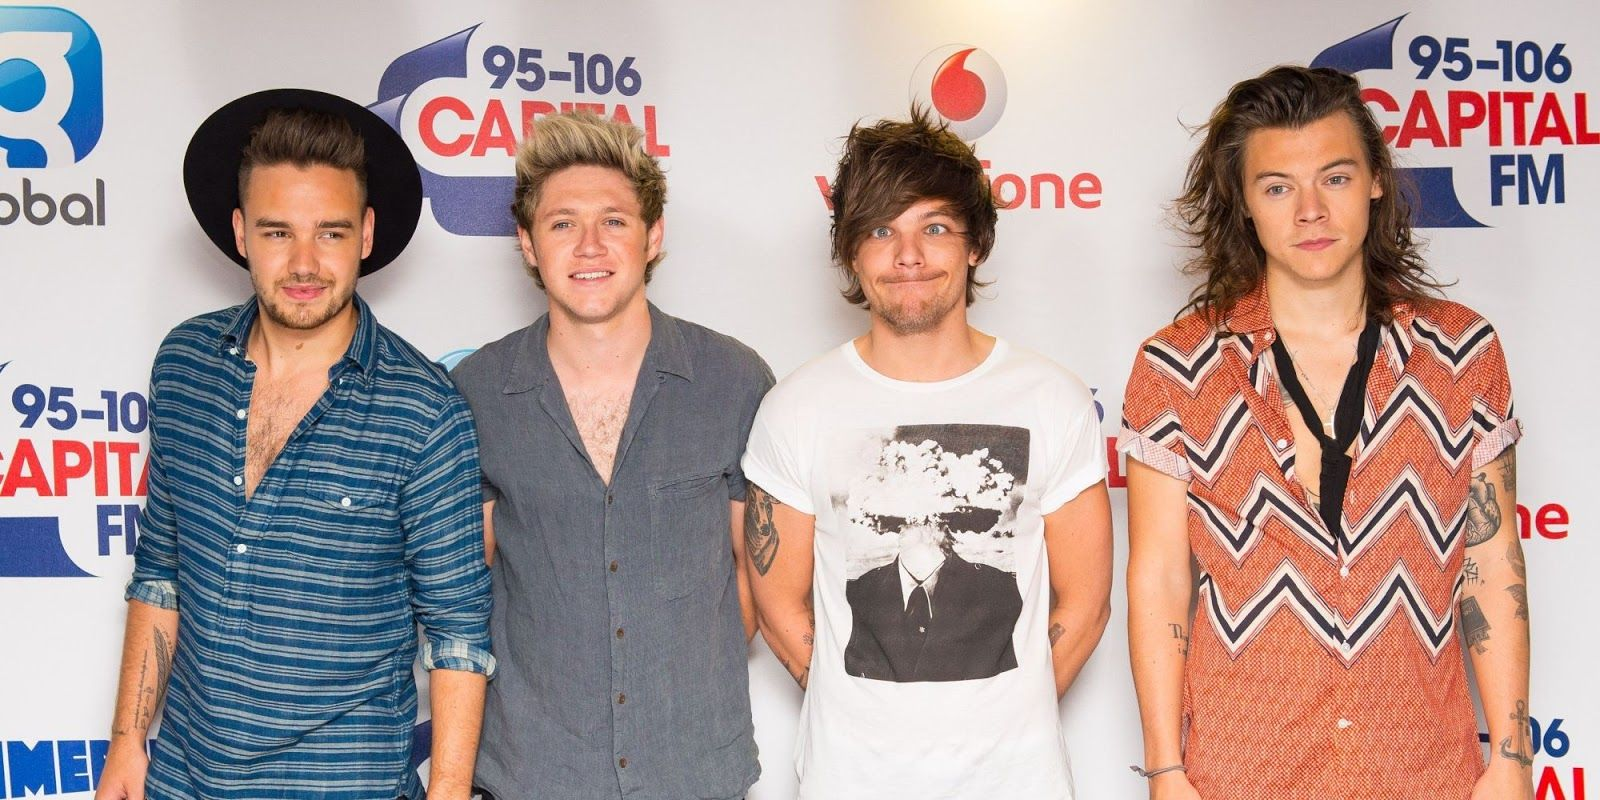 One direction have revealed their first single since